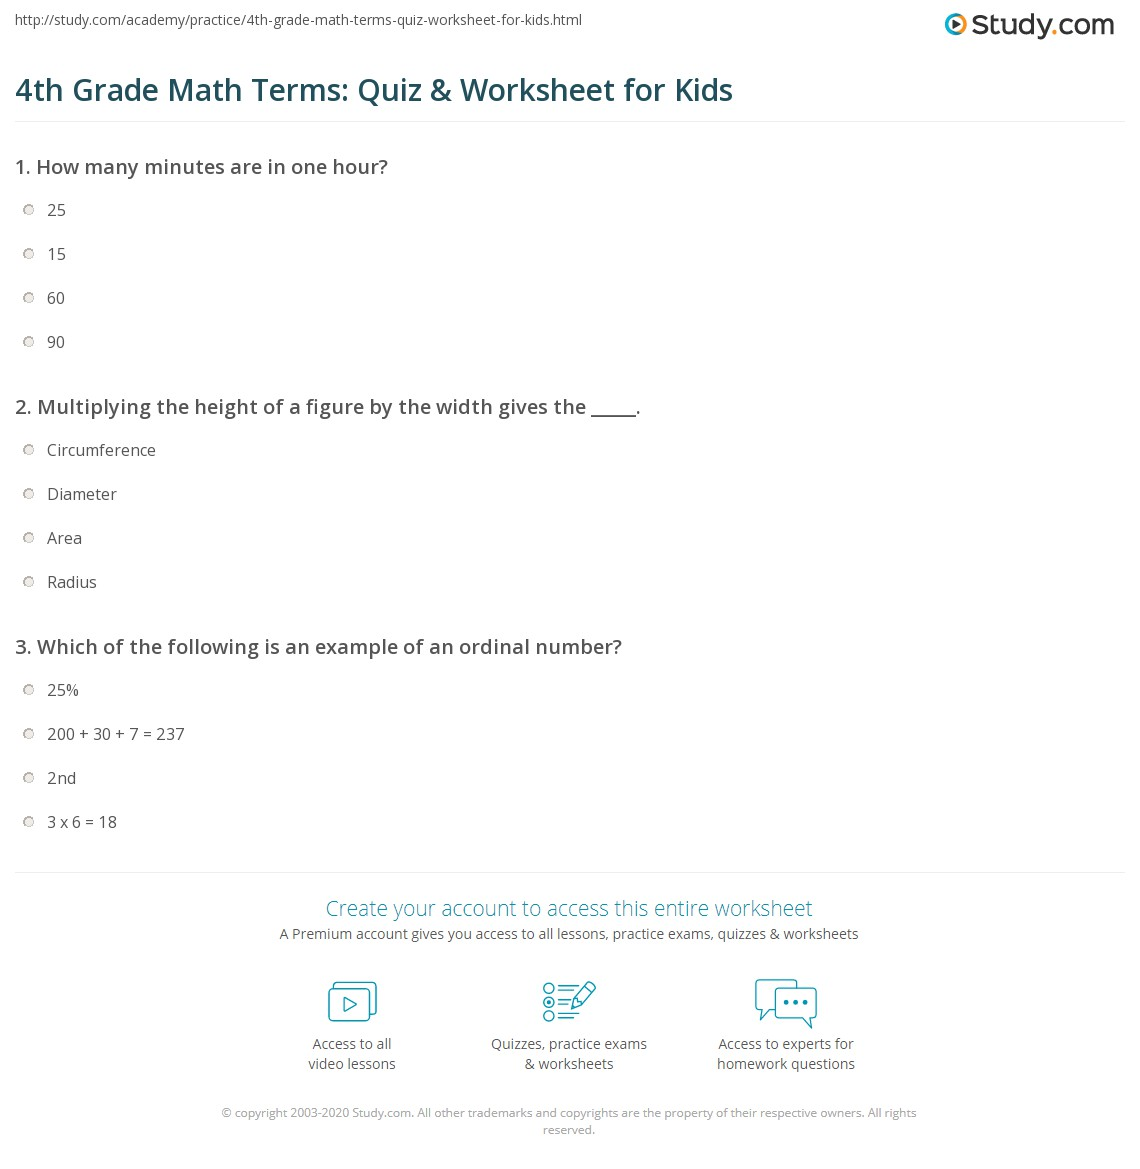 4th Grade Math Terms Quiz & Worksheet for Kids